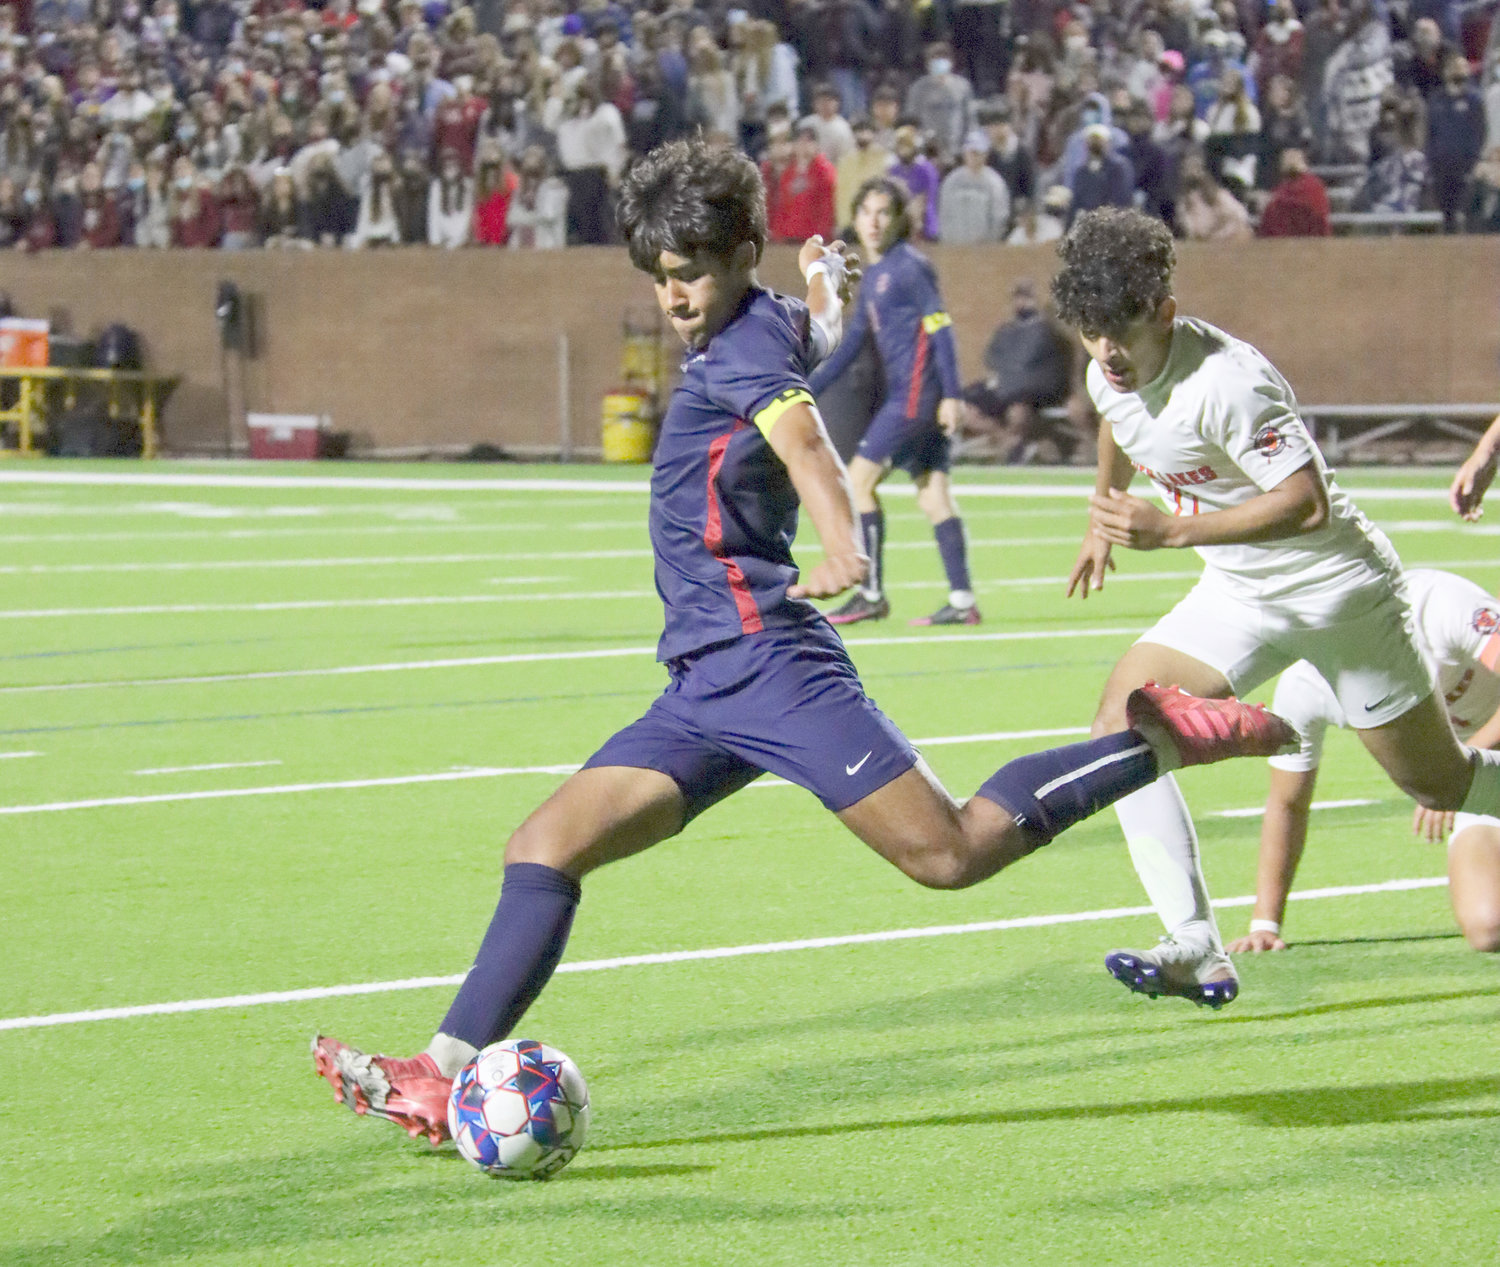 Tompkins junior Rafa Gonzales (8) prepares to kick the ball downfield during the Falcons' Class 6A regional quarterfinal win over Seven Lakes on Friday, April 2, at Rhodes Stadium.